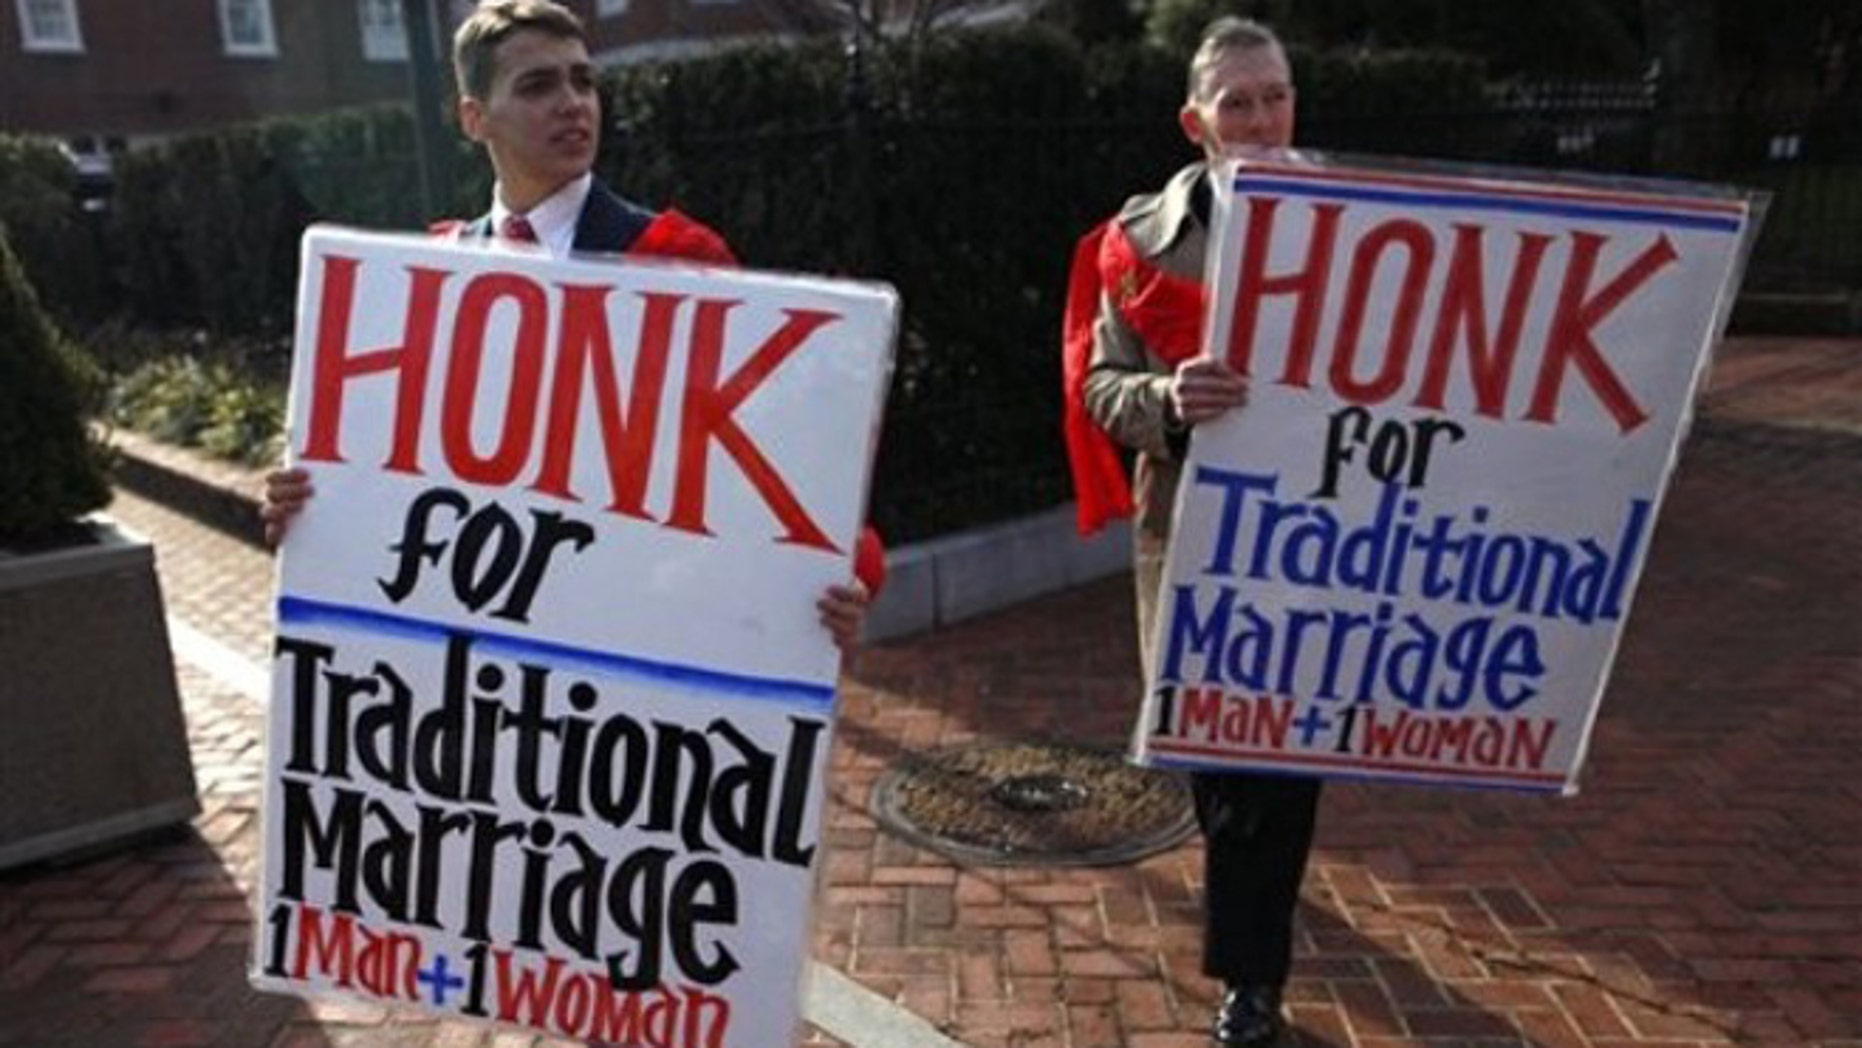 Feb. 17, 2012: Protesters demonstrate against a gay marriage bill before the Maryland State House in Annapolis, Md.